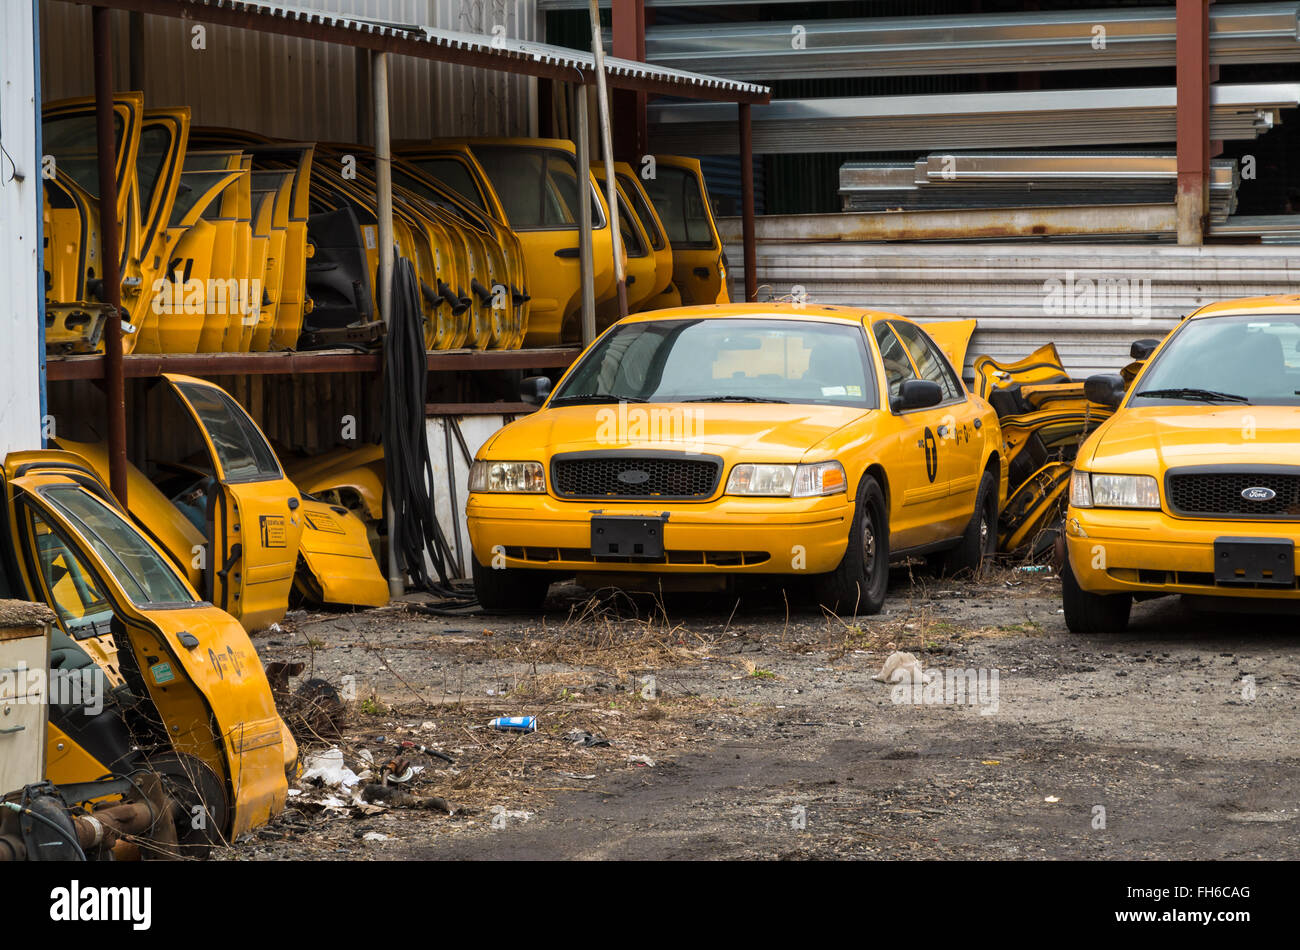 Stoystown Auto Sales >> Junk Yard Car Stock Photos & Junk Yard Car Stock Images - Alamy